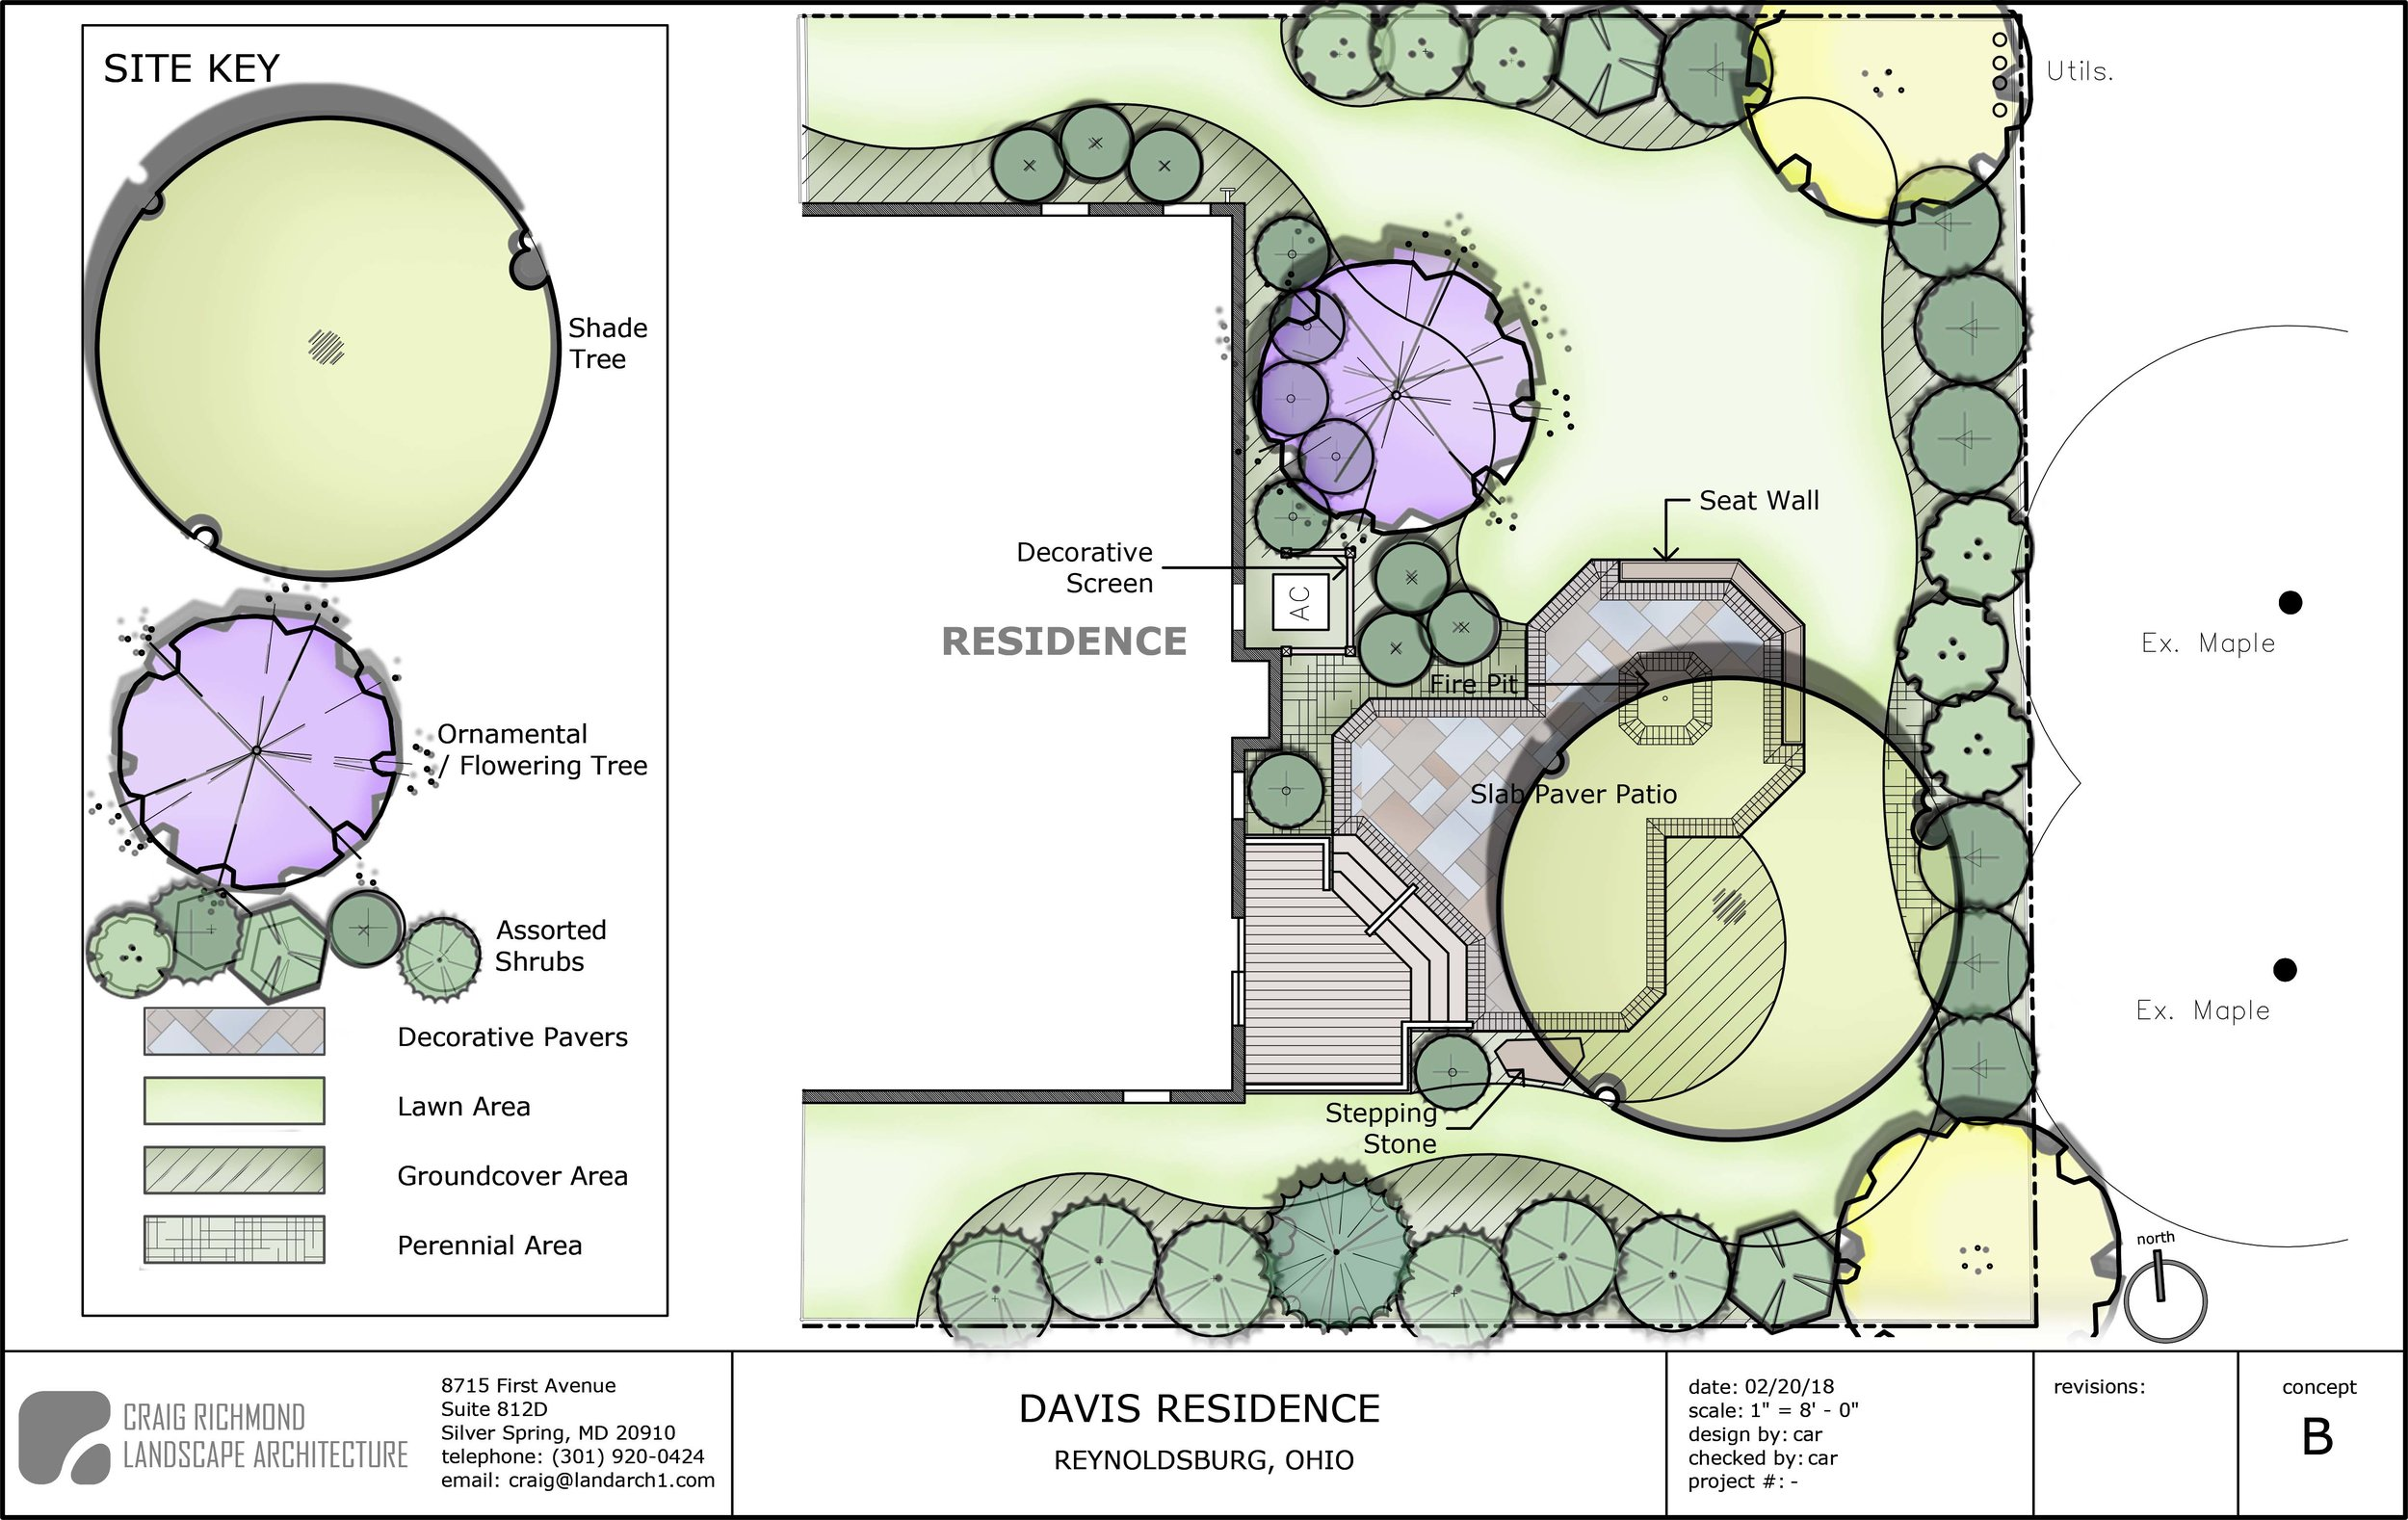 Single Family Residence-Rear Yard Concept #2, Columbus,OH  The goal with this concept was to provide a deck that would obstruct views from the patio doors with railing. The open plan allows a less restricted access to patio and fire pit area.